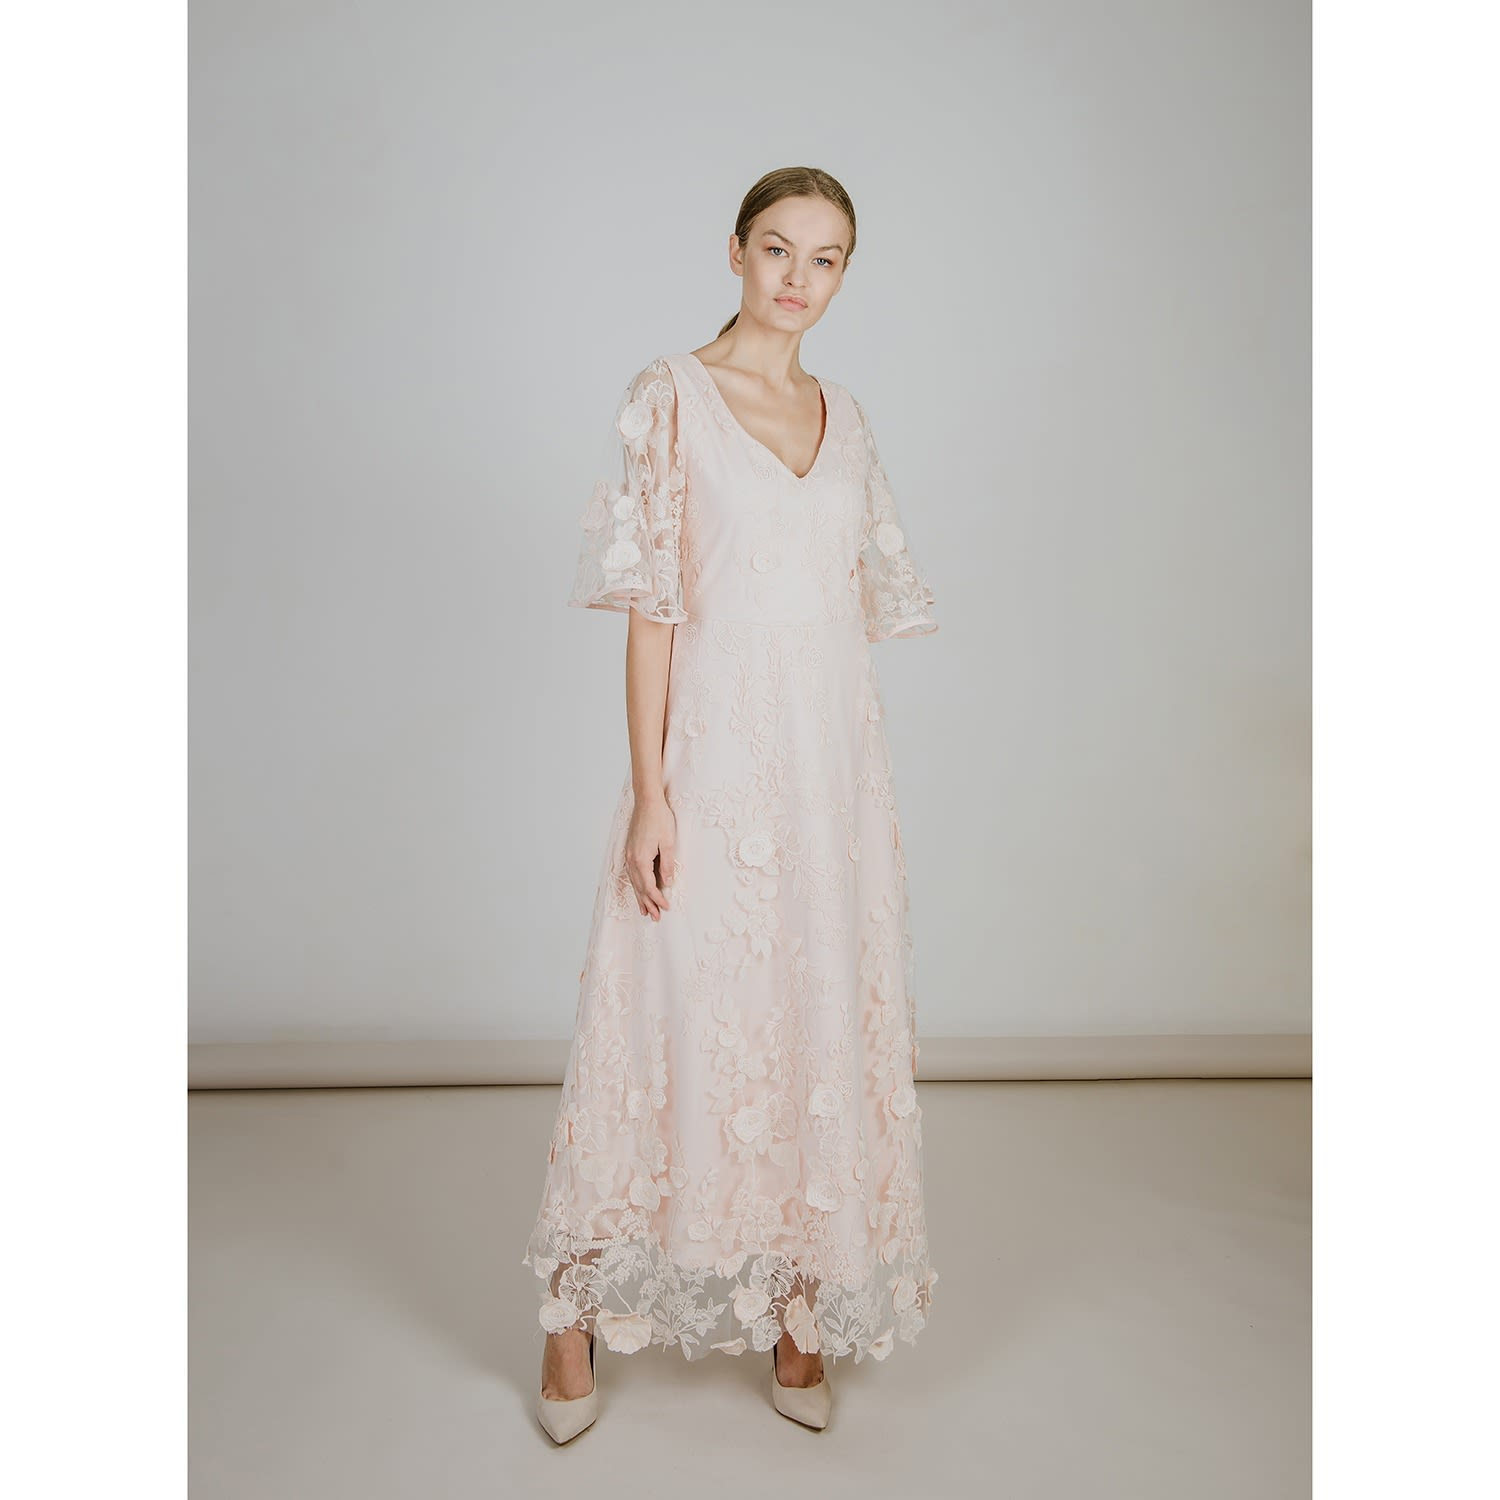 Silk Lace Light Pink Dress By Emelita